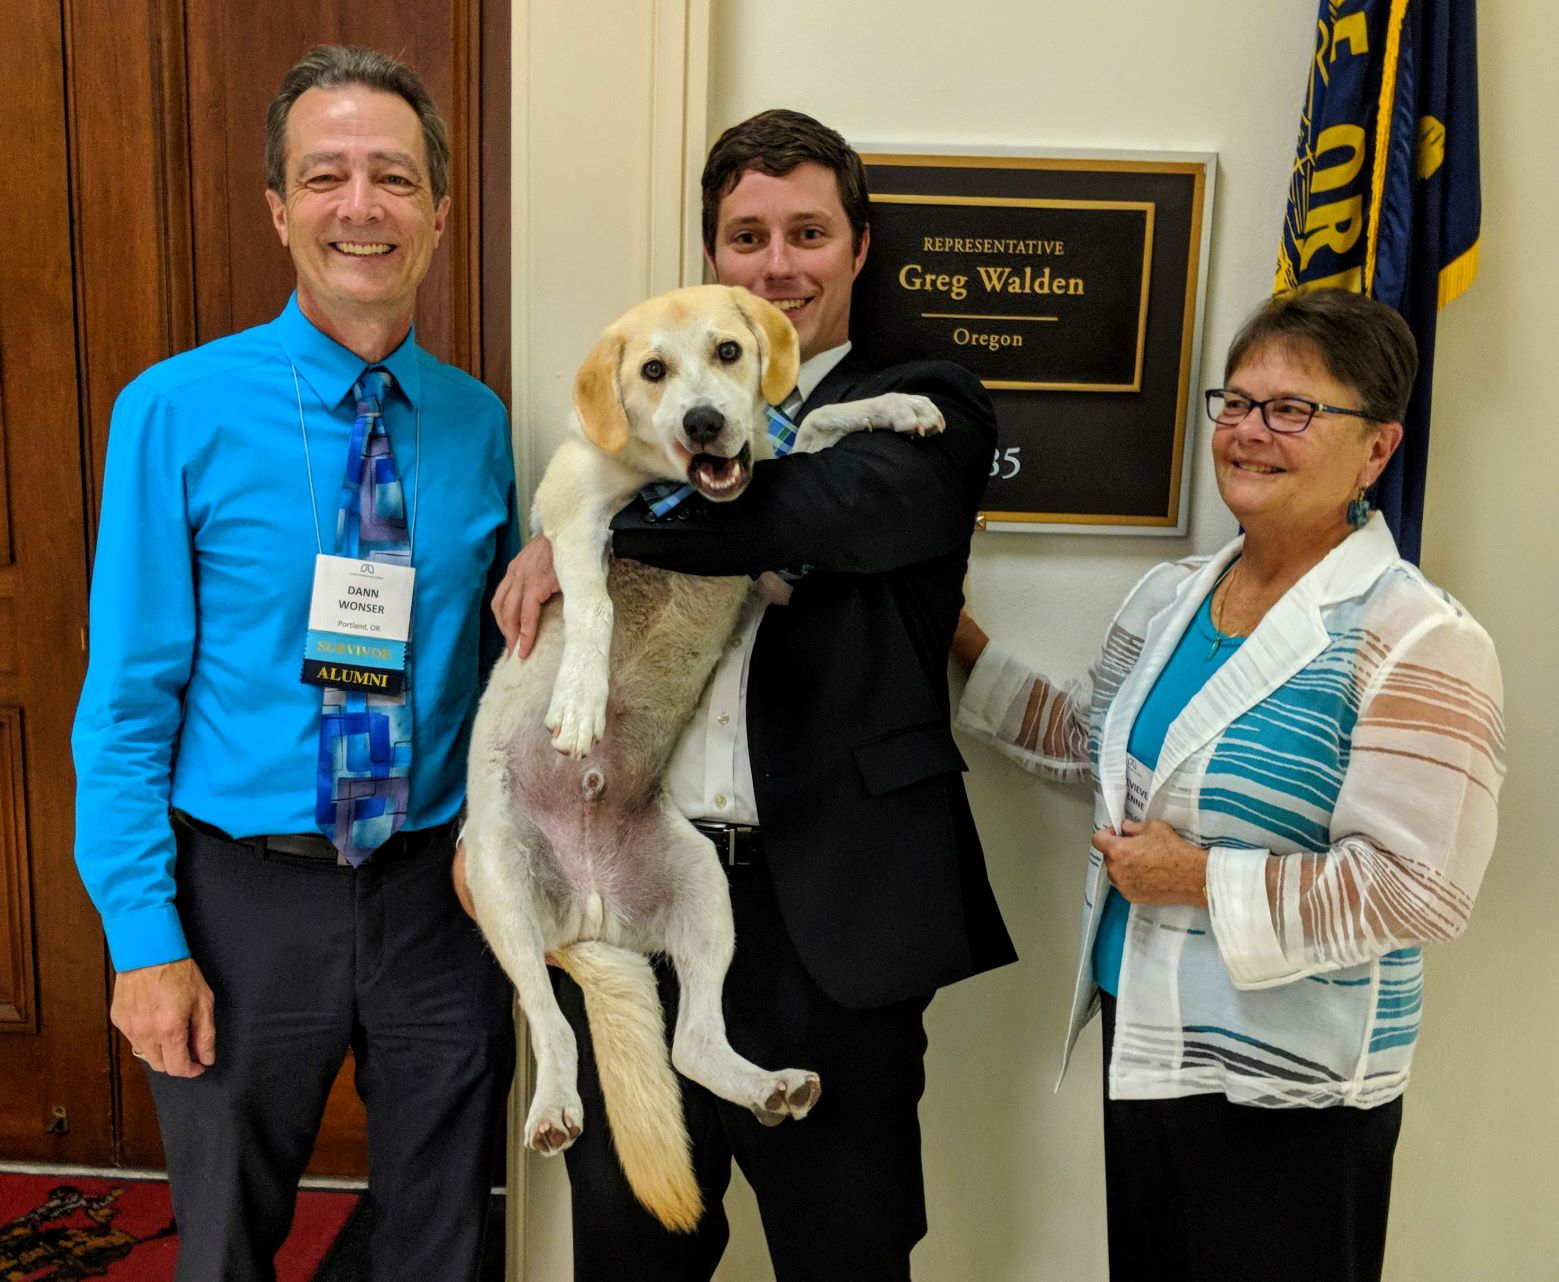 Nolan Ahern: Every day is Bring Your Dog to Work Day in Rep. Greg Walden's Office!